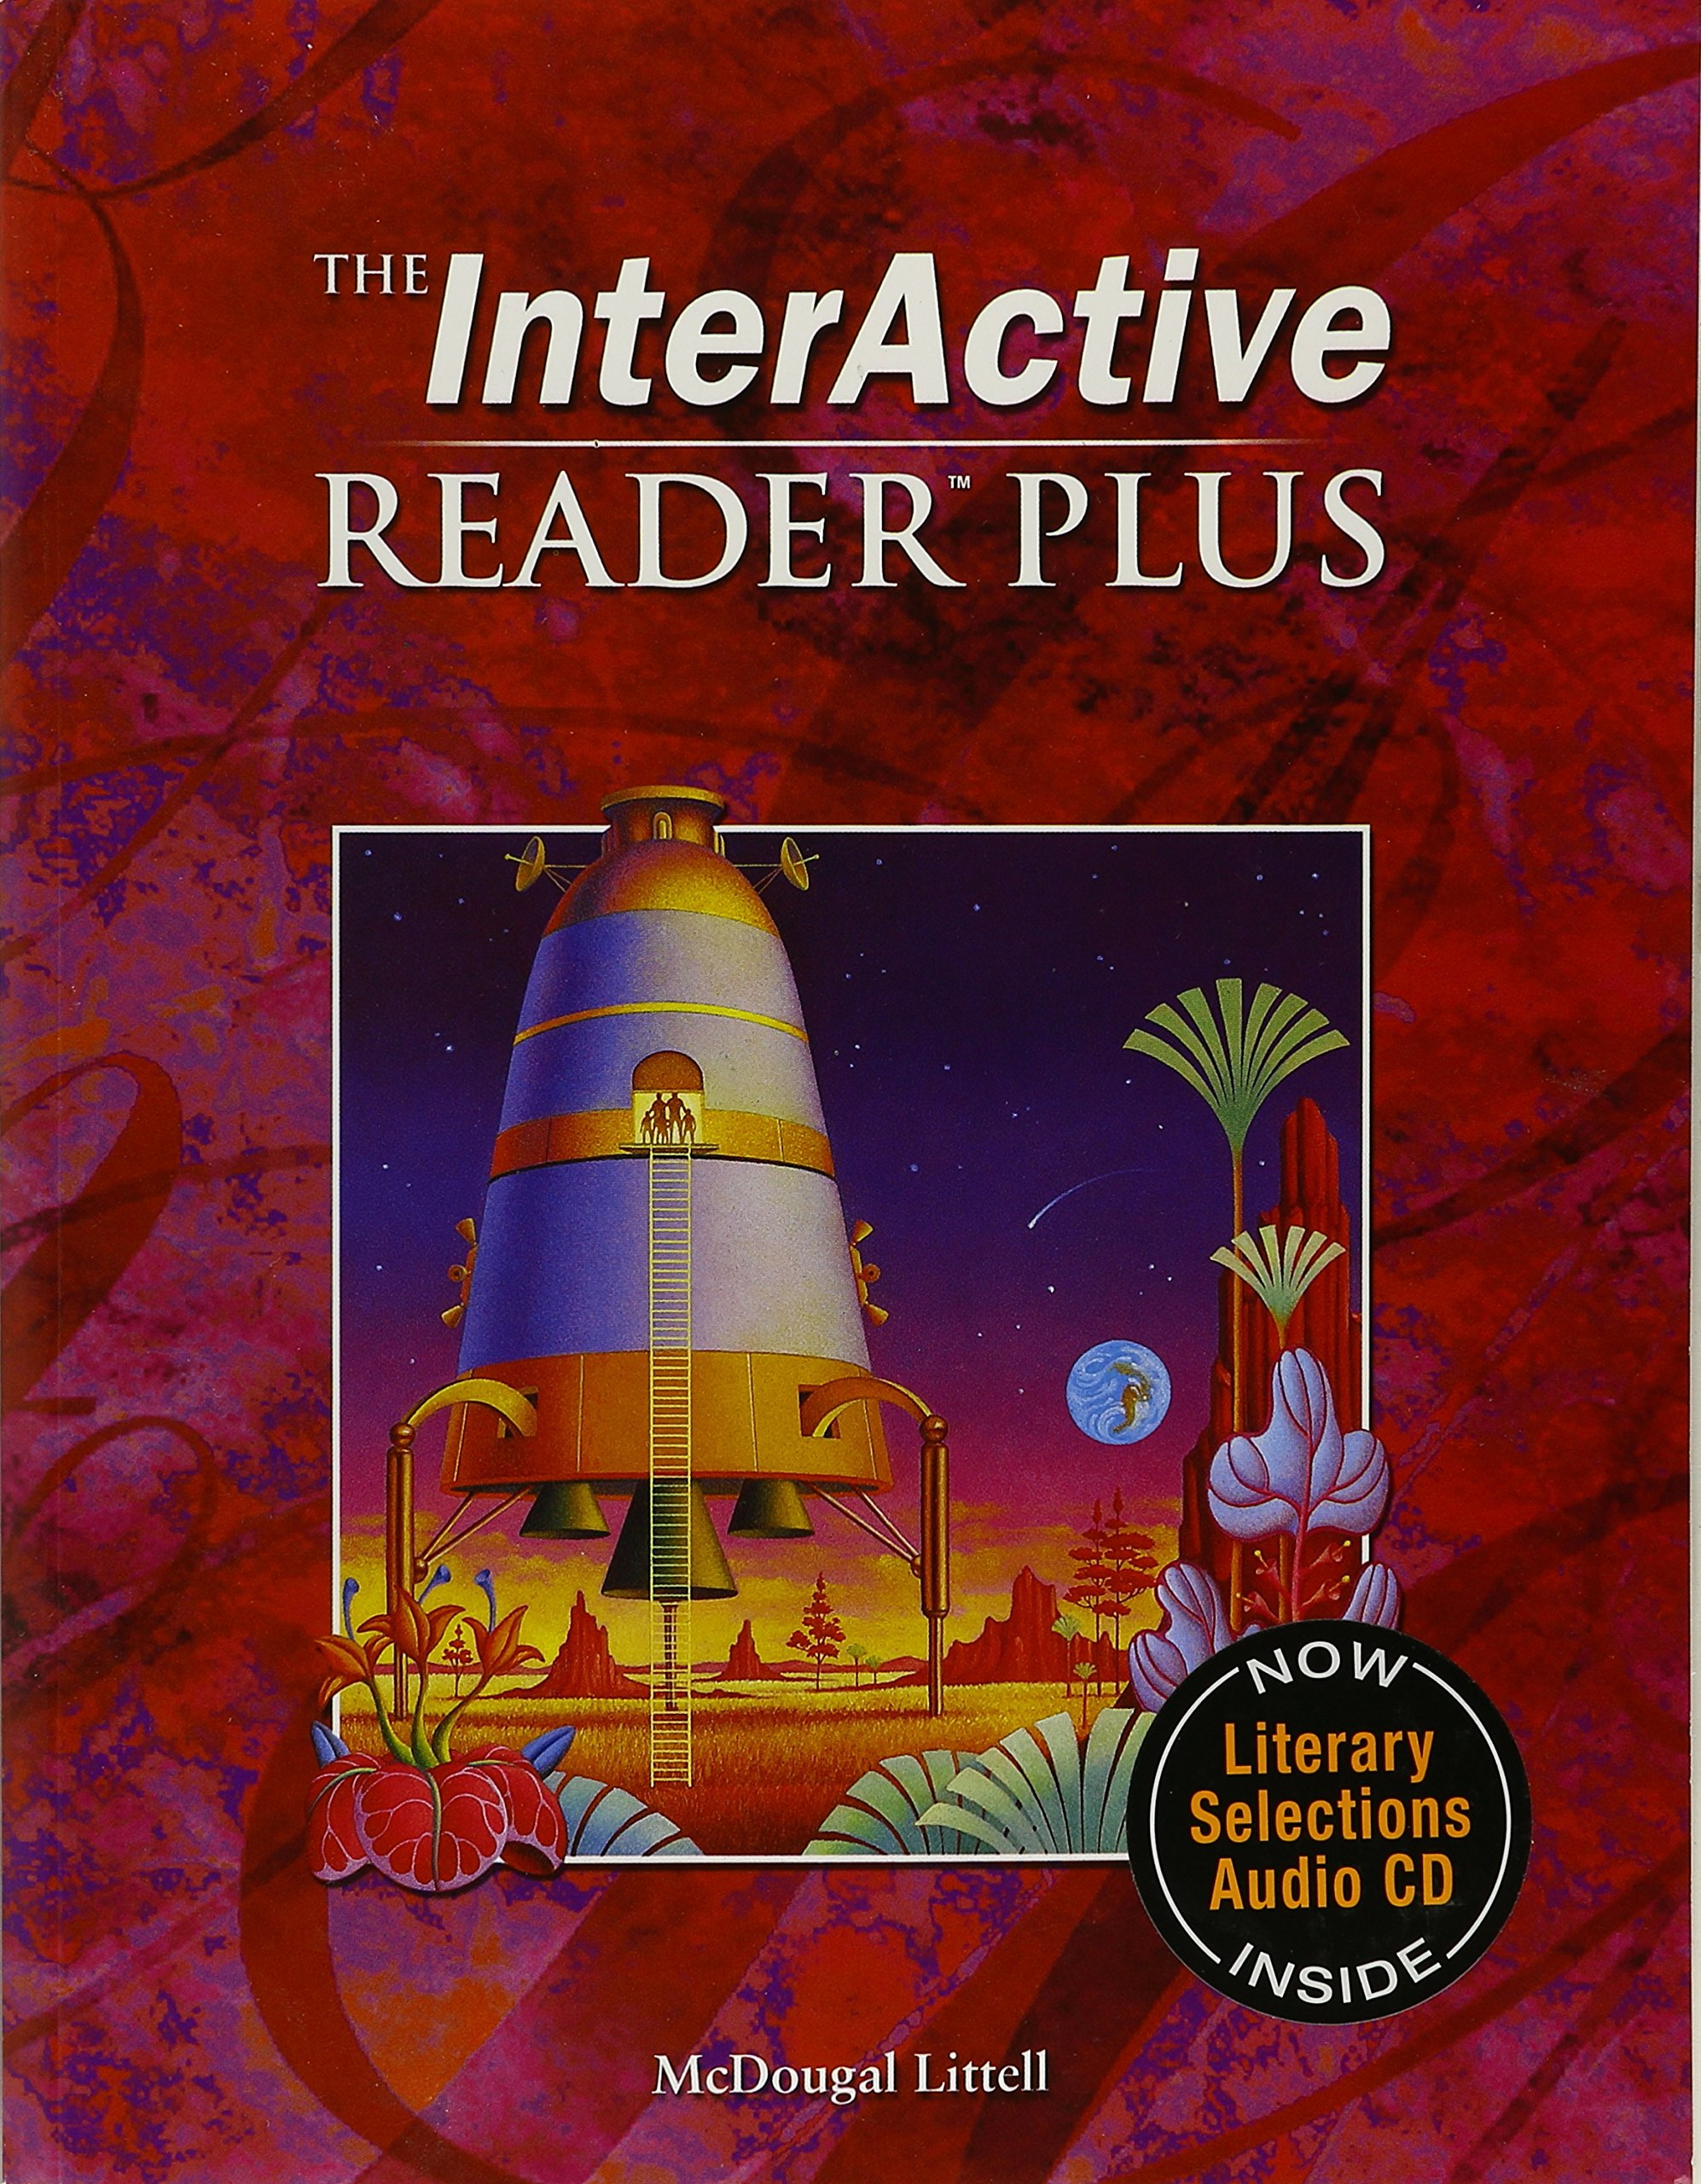 McDougal Littell Language of Literature: The Interactive Reader Plus with Audio CD-Rom Grade 7 by MCDOUGAL LITTEL